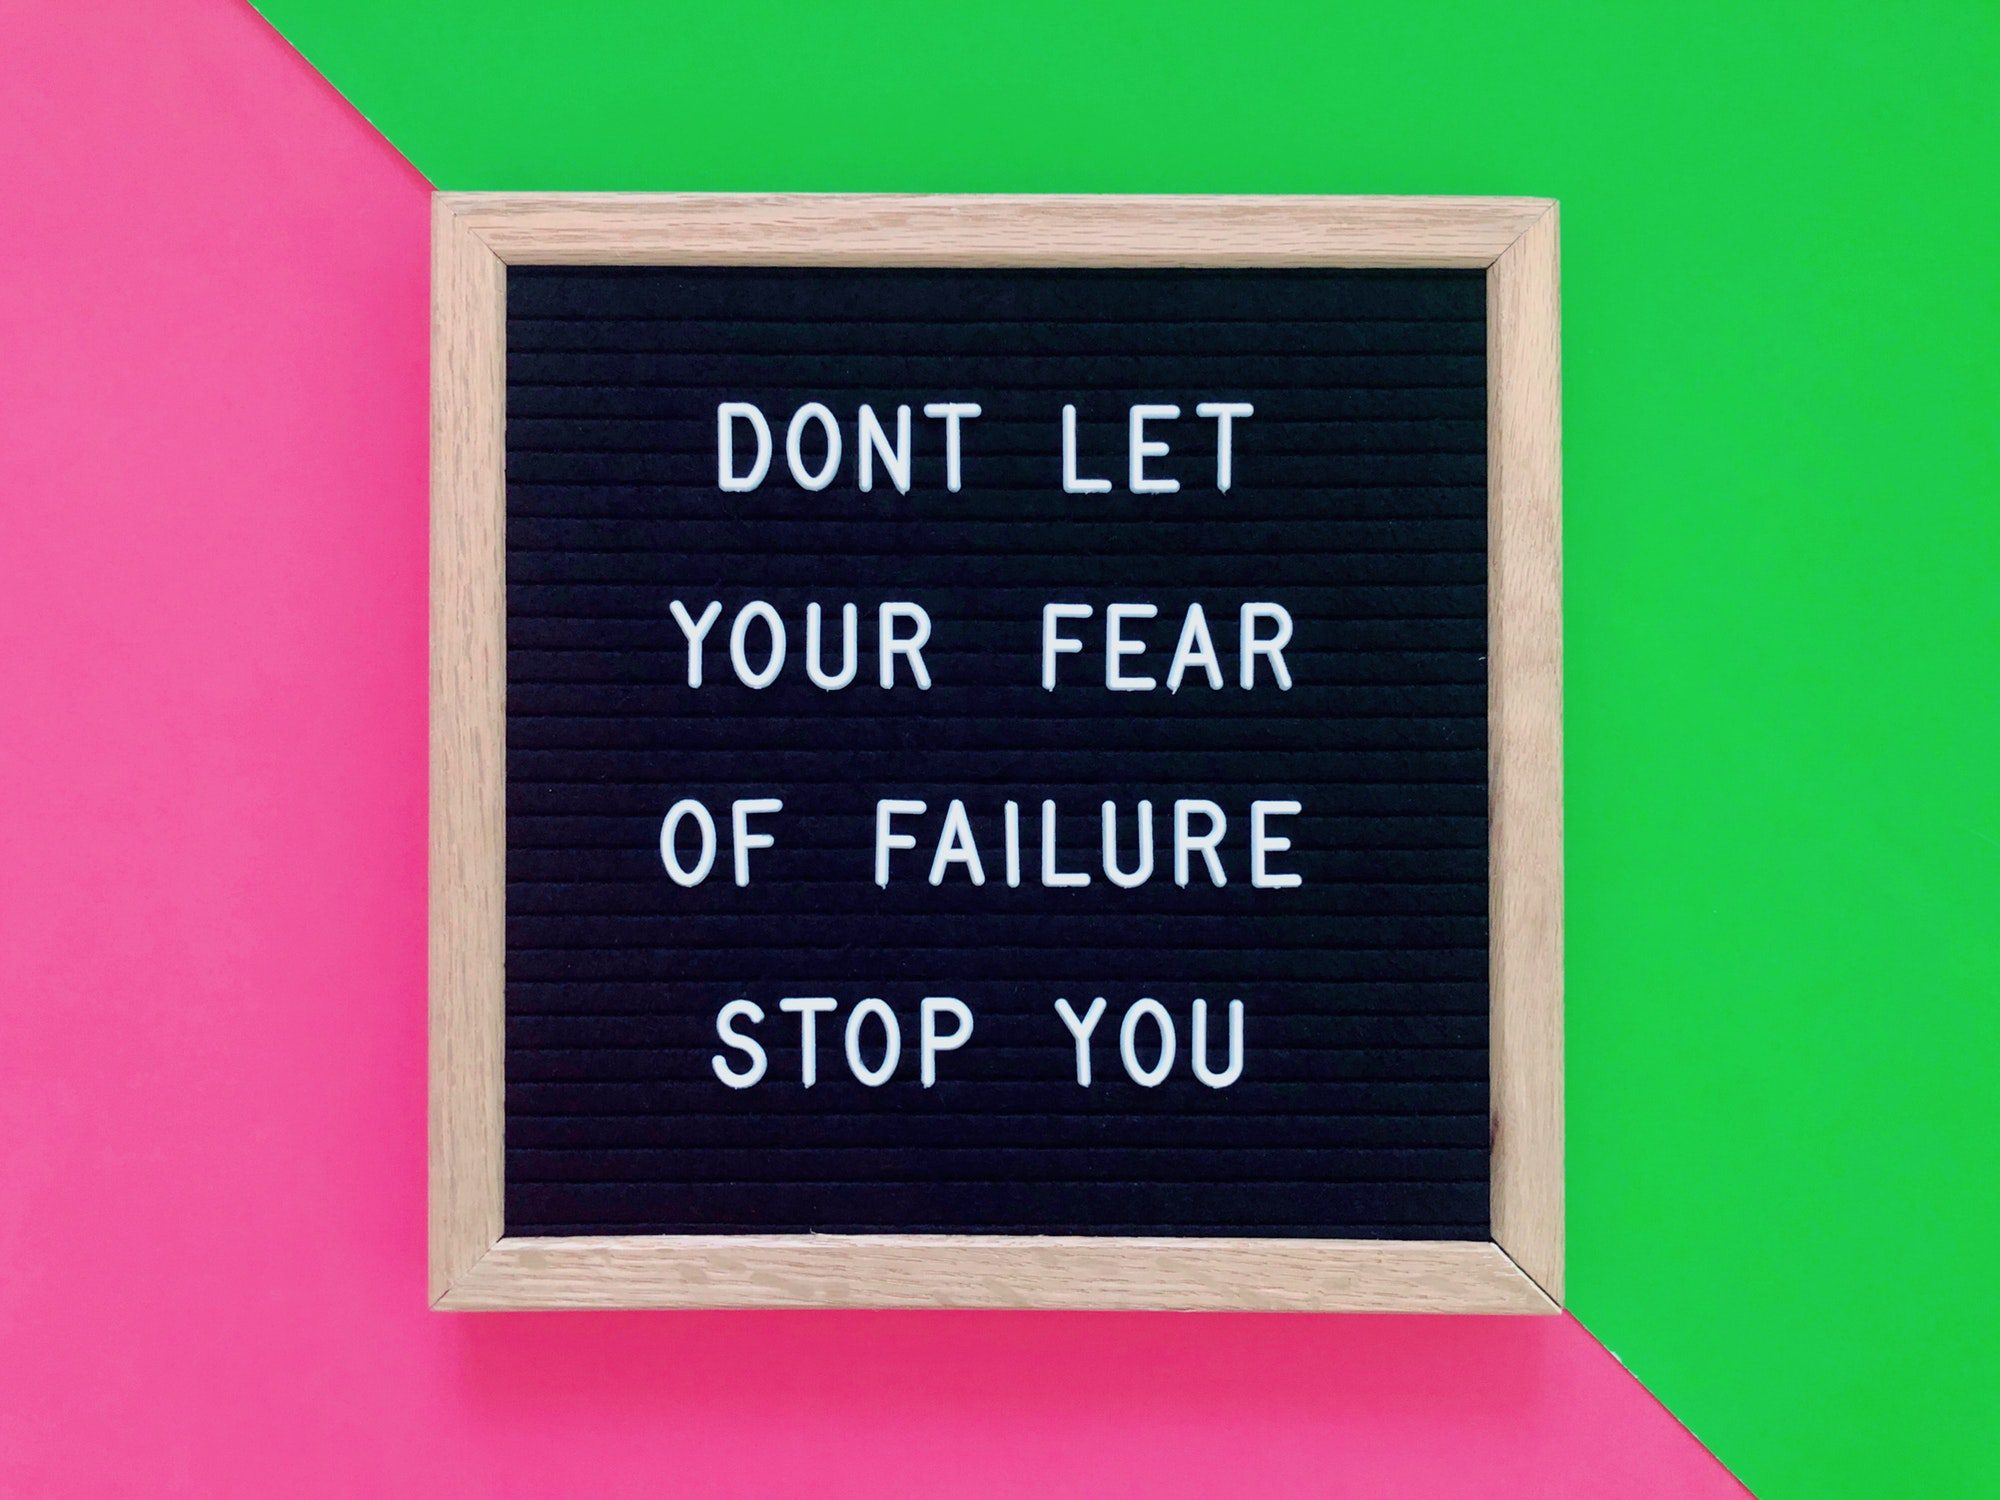 Don't Let Your Fear Of Failure Stop You